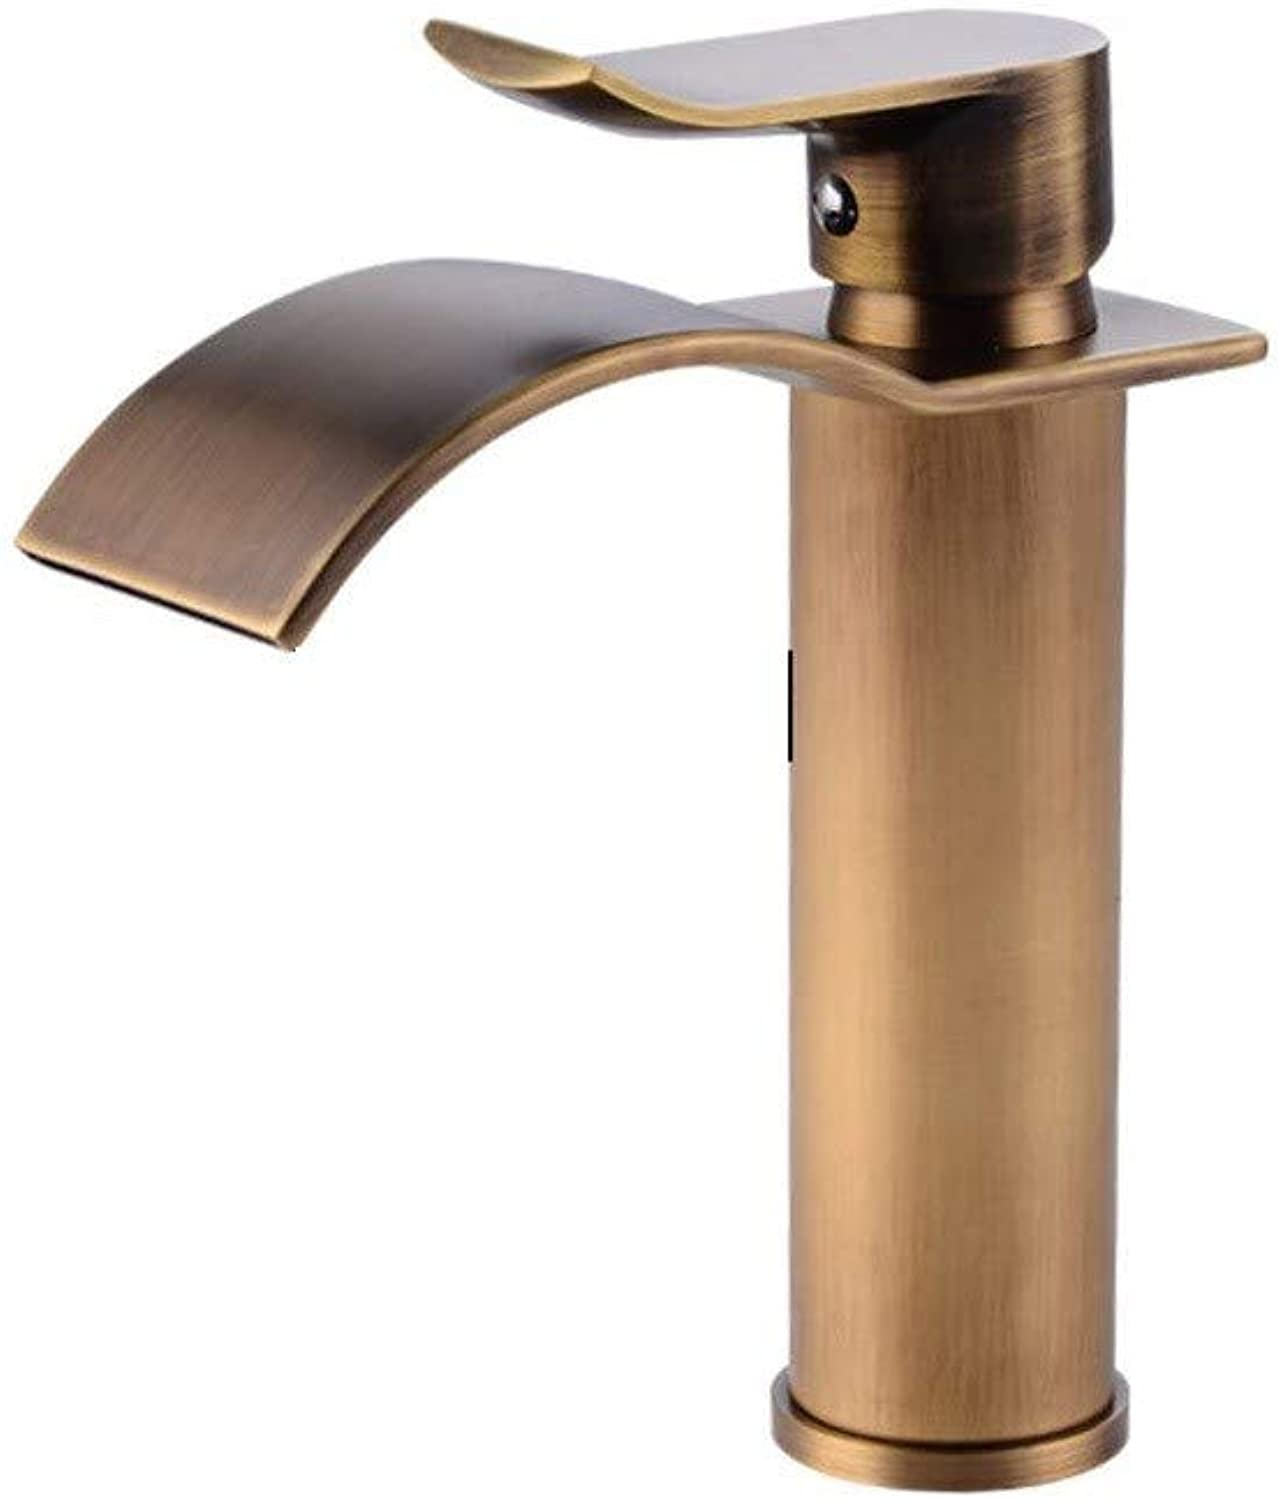 Rmckuva Bathroom Sink Taps Retro Waterfall Effect Basin Mixer Brass Bathroom Mixer Brushed Curved Mouth